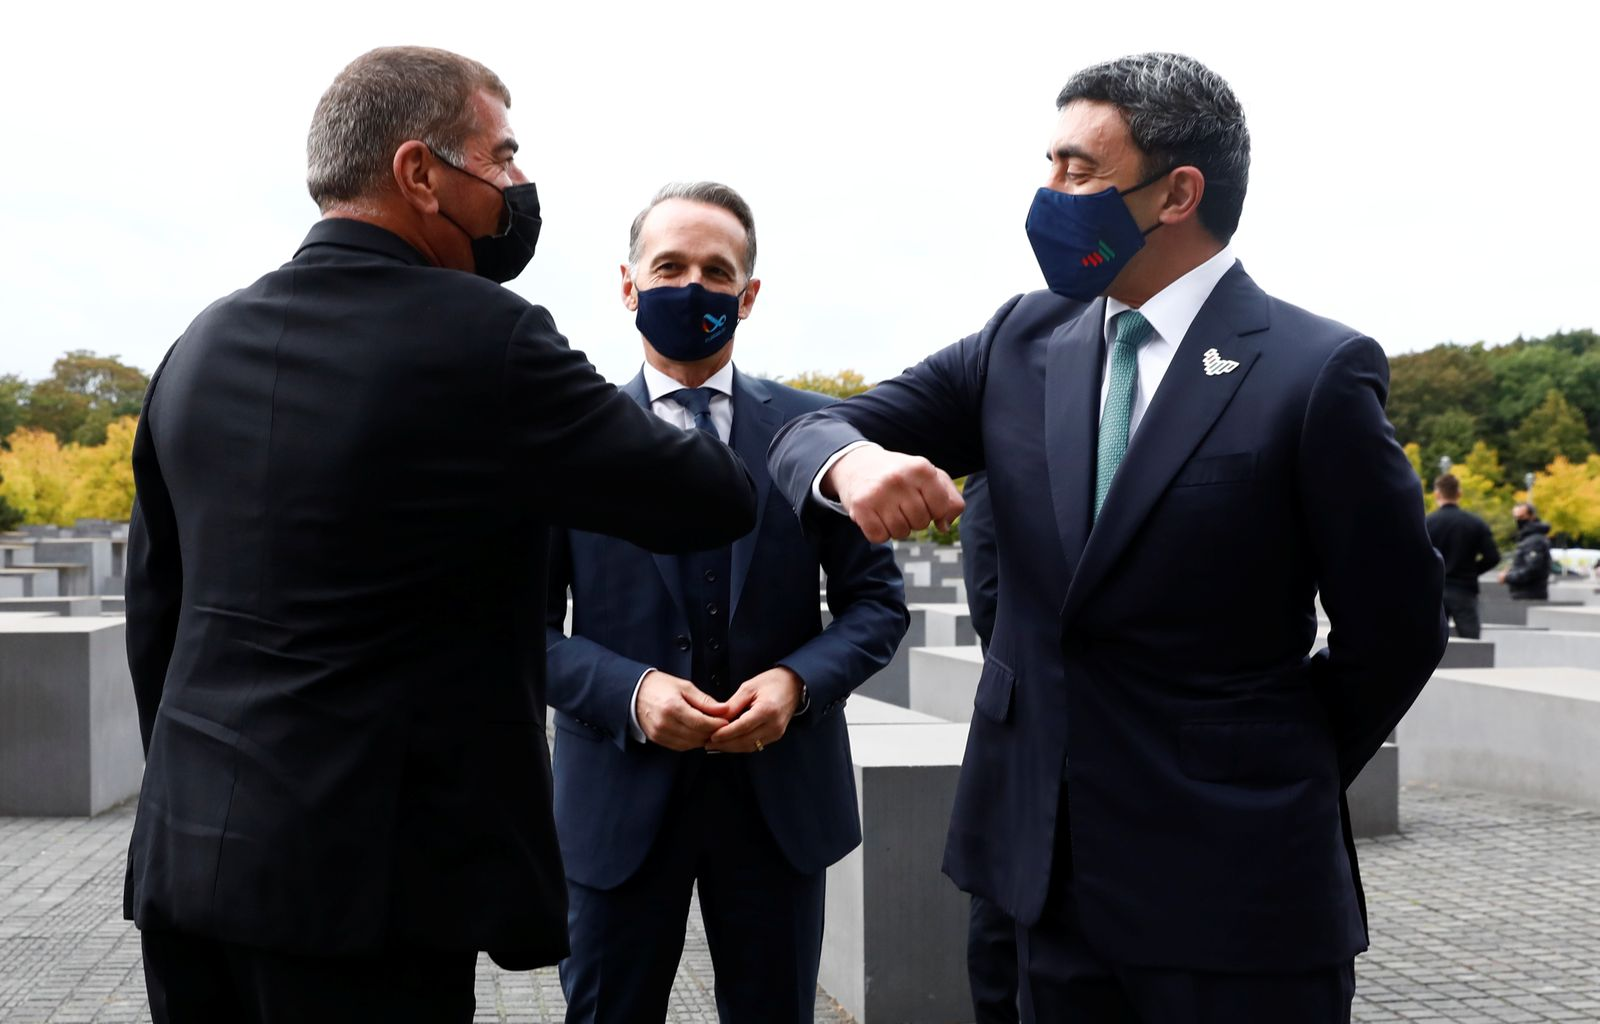 UAE Foreign Minister Sheikh Abdullah bin Zayed al-Nahyan and his Israeli counterpart Gabi Ashkenazi visit the Holocaust memorial together with German Foreign Minister Heiko Maas prior to their historic meeting in Berlin